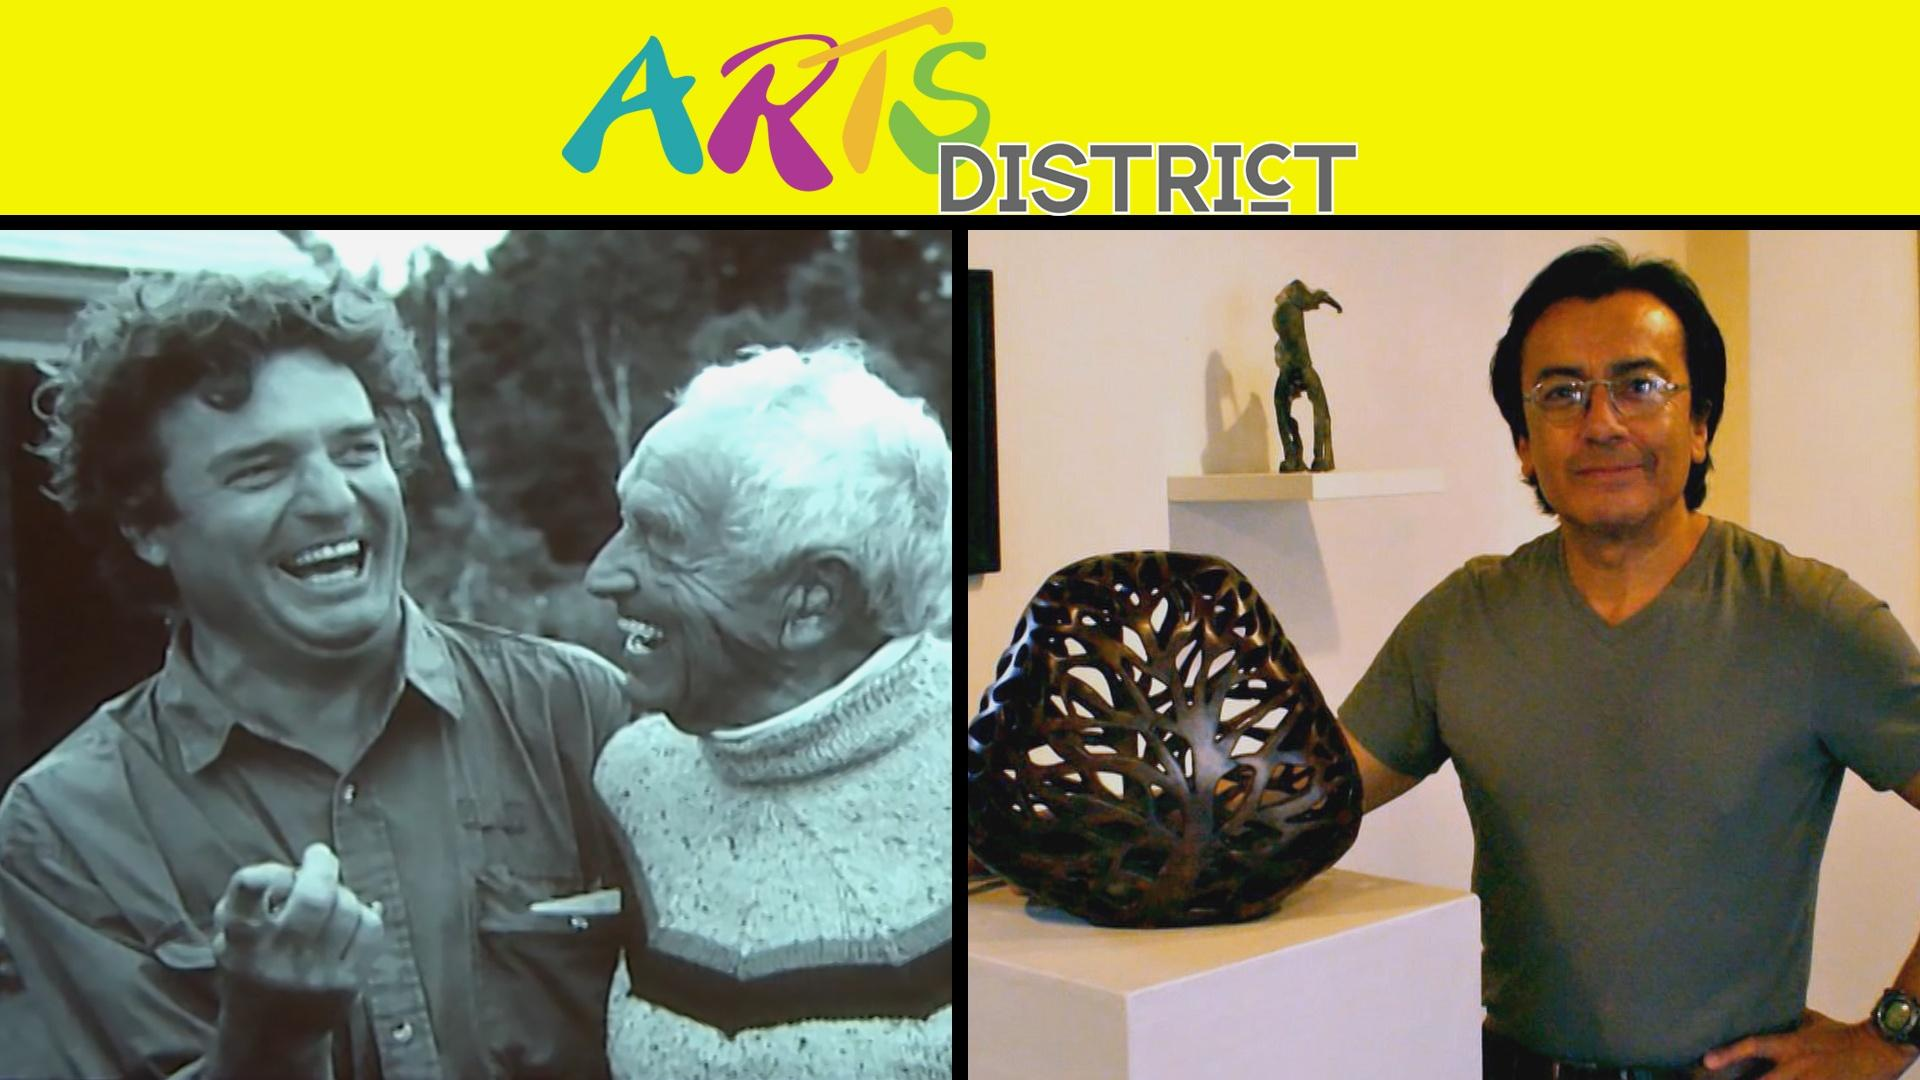 Video: Arts District 412. First aired 01/07/2016 | Watch Arts District ...